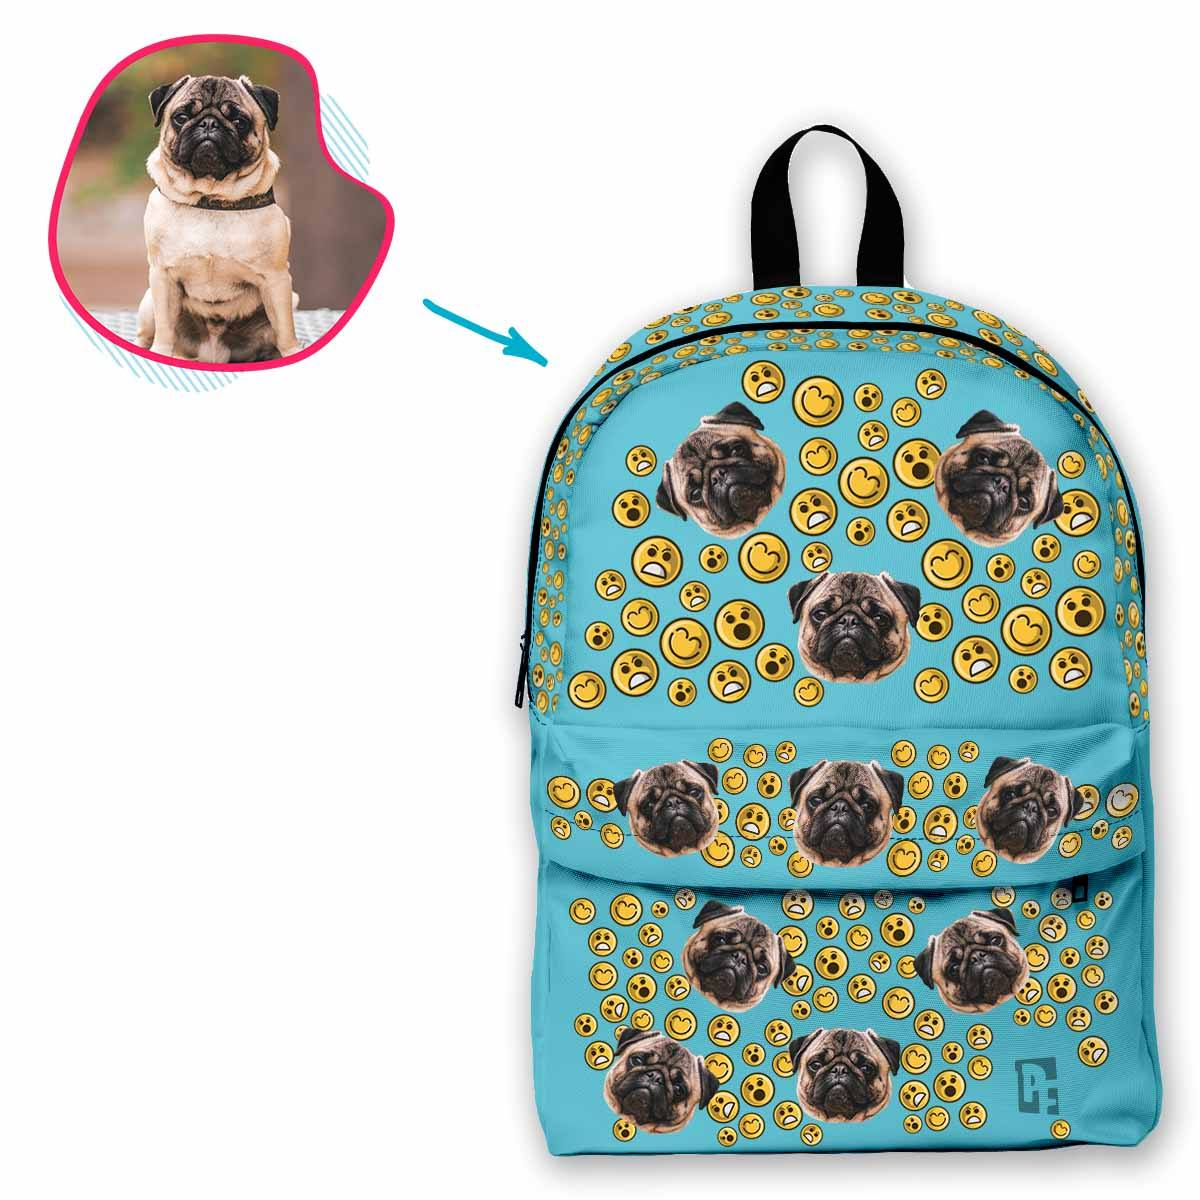 blue Smiles classic backpack personalized with photo of face printed on it